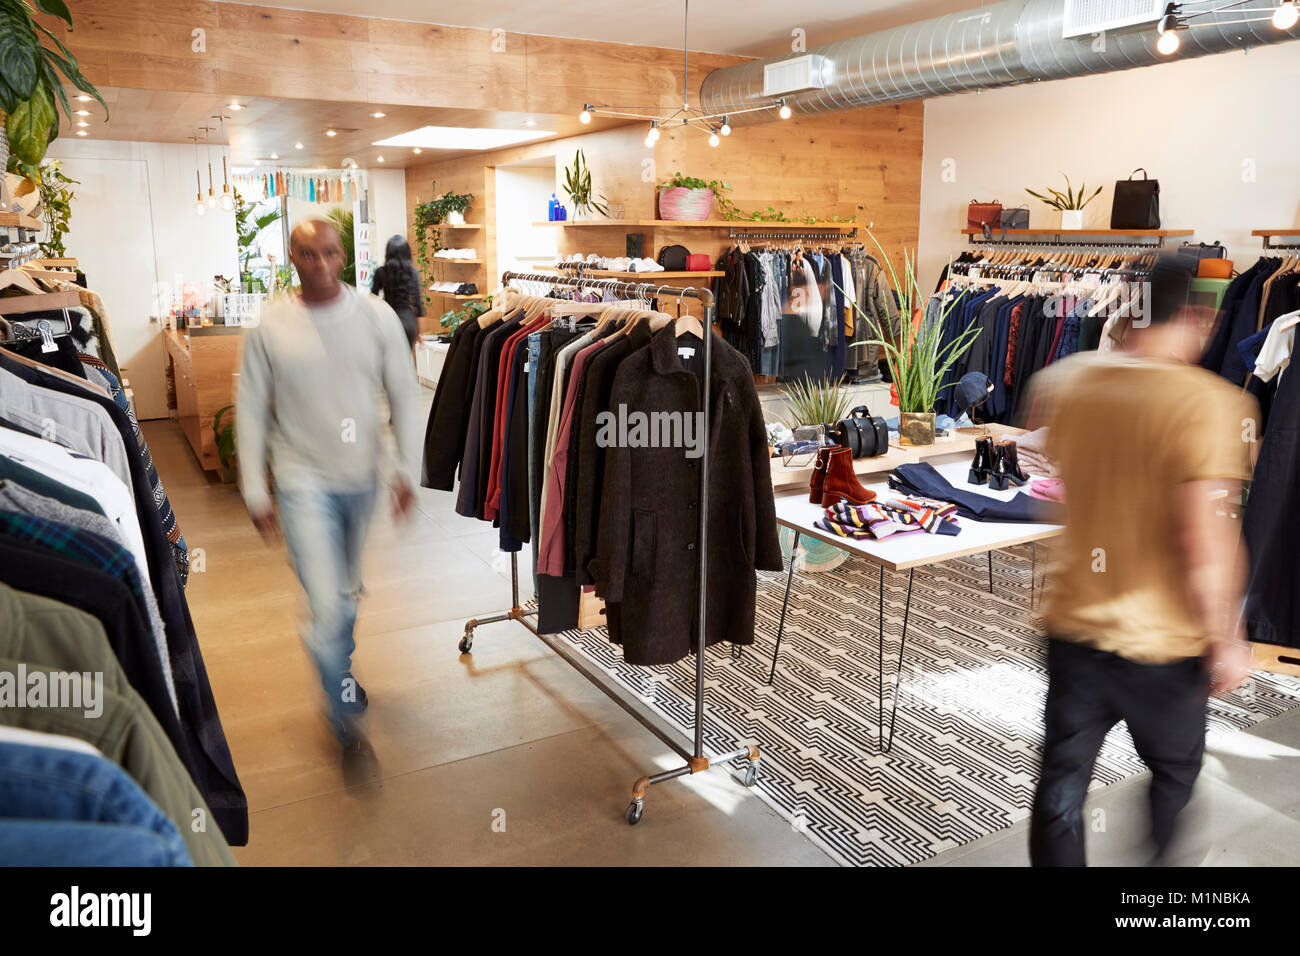 Les gens marcher dans un magasin de vêtements d'occupation, le motion blur Photo Stock